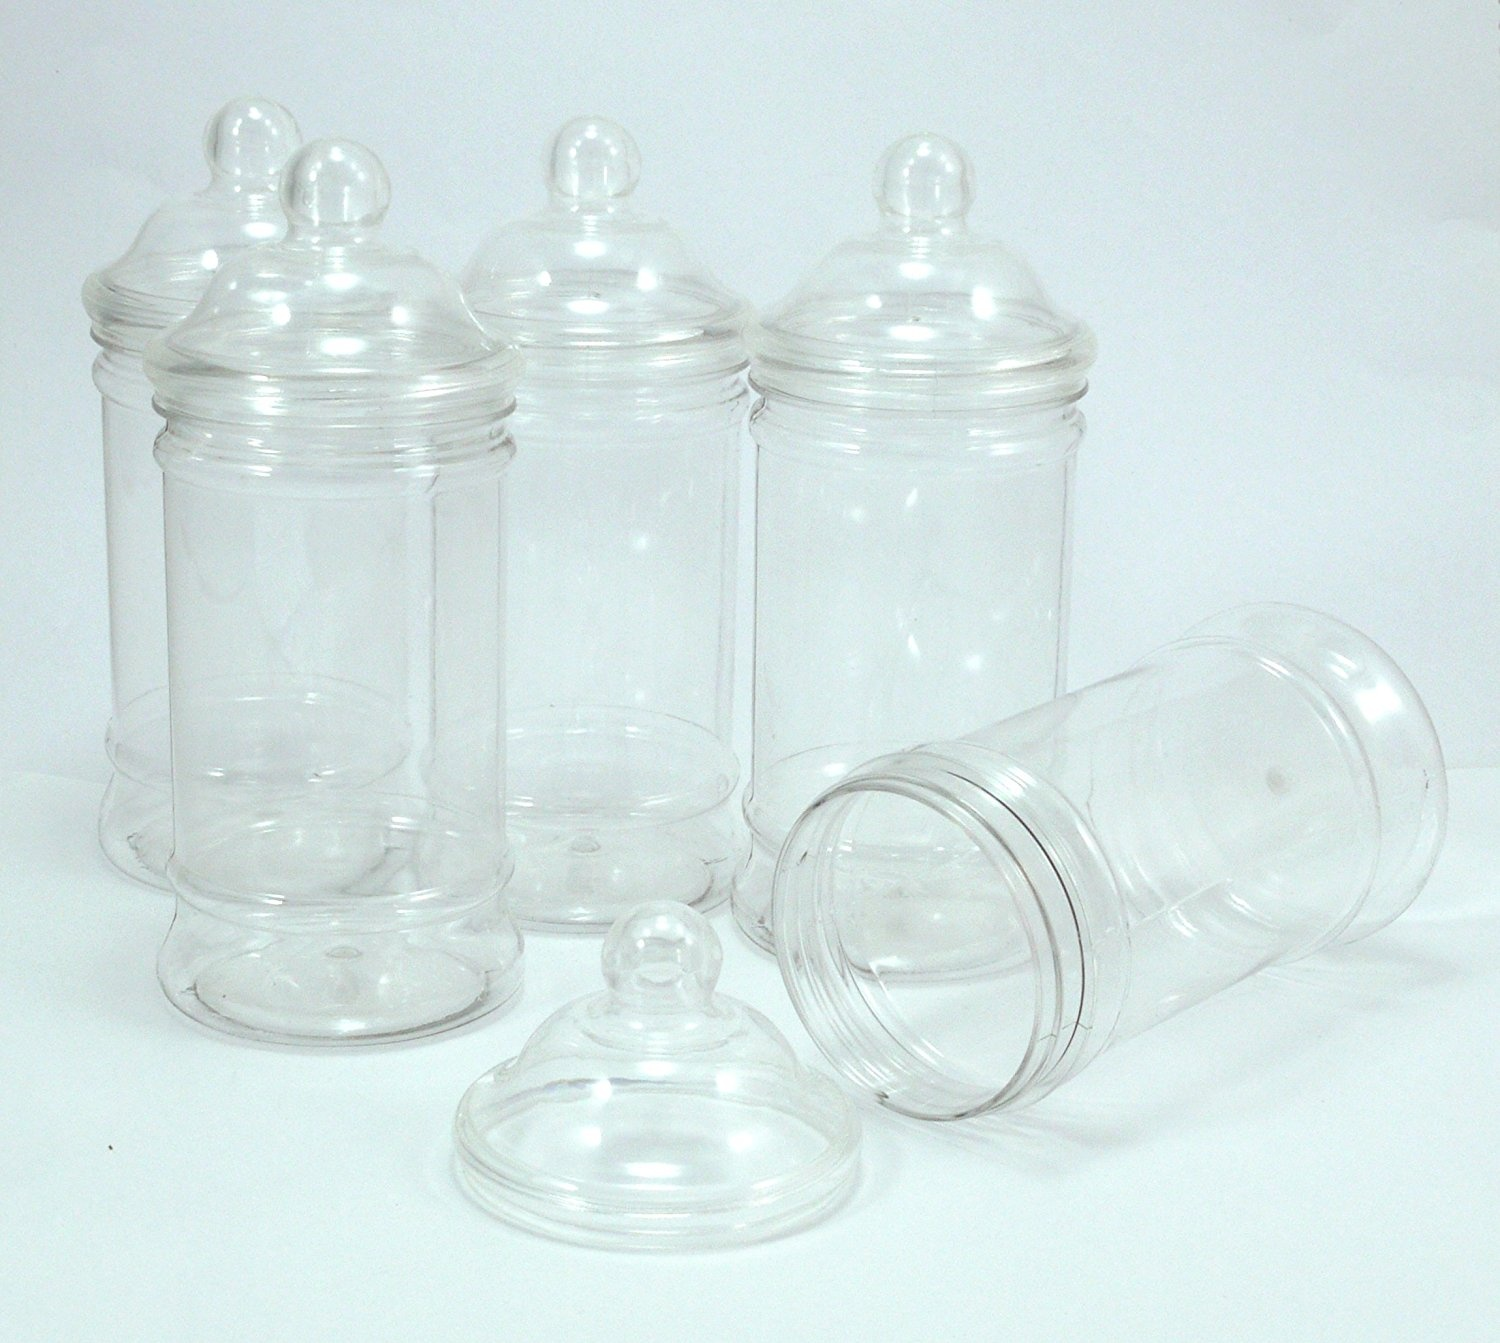 028eaab3950a PLASTIC JAR PACK OF 5 EMPTY CLEAR PLASTIC JARS WITH DECORATIVE VICTORIAN  STYLE 'BOBBLE' SCREW TOP LIDS by Britten & James®. Brand new food grade PET  ...